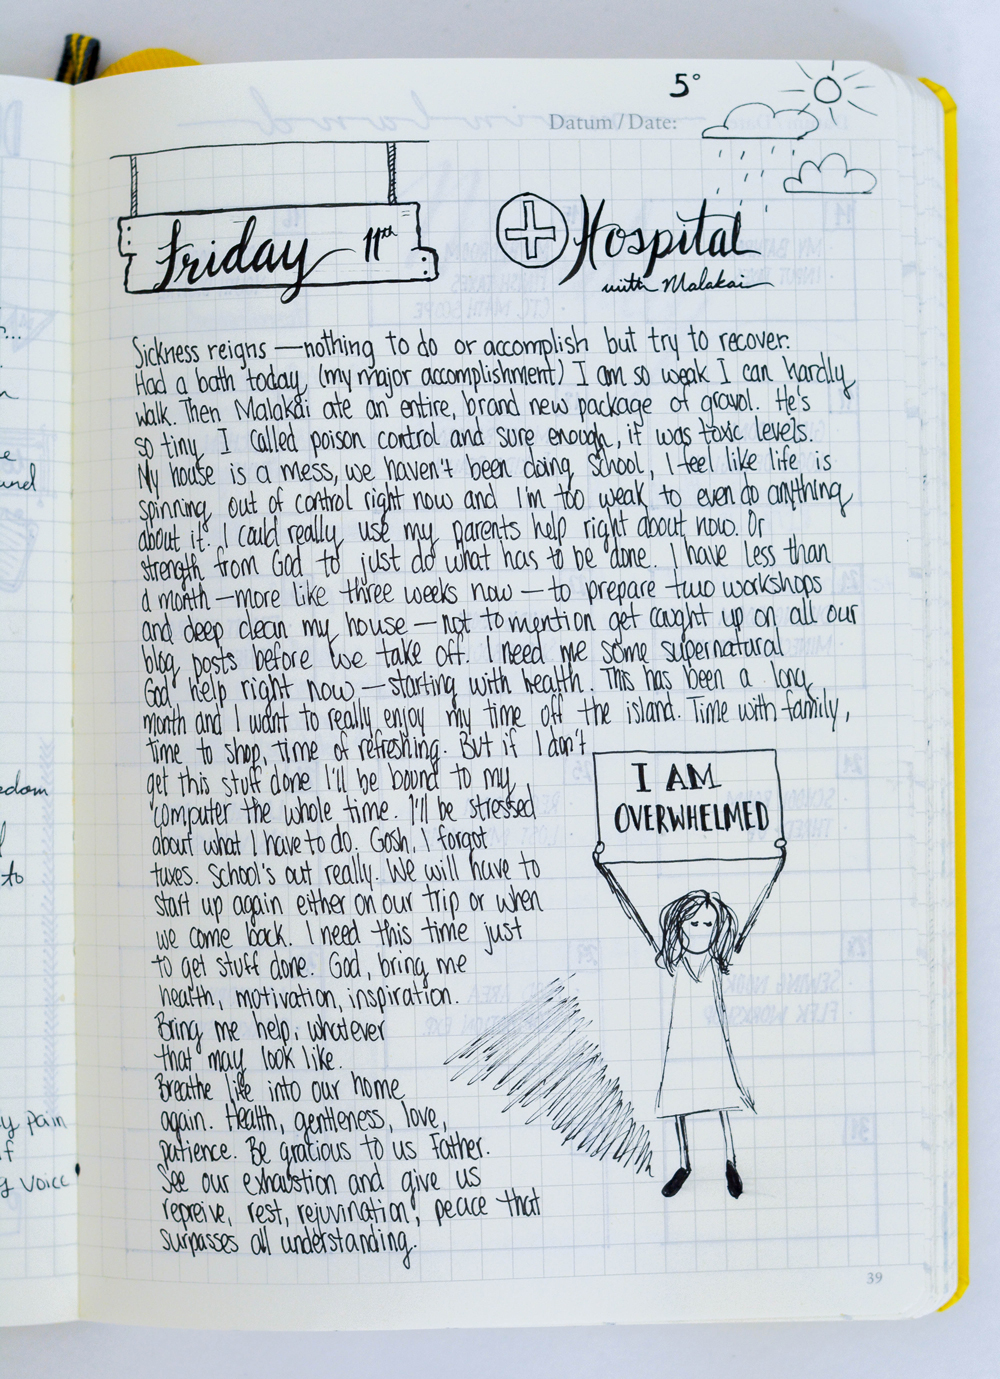 Bullet Journal Ideas: 8 Daily Bullet Journal Layout Ideas For Your Planner